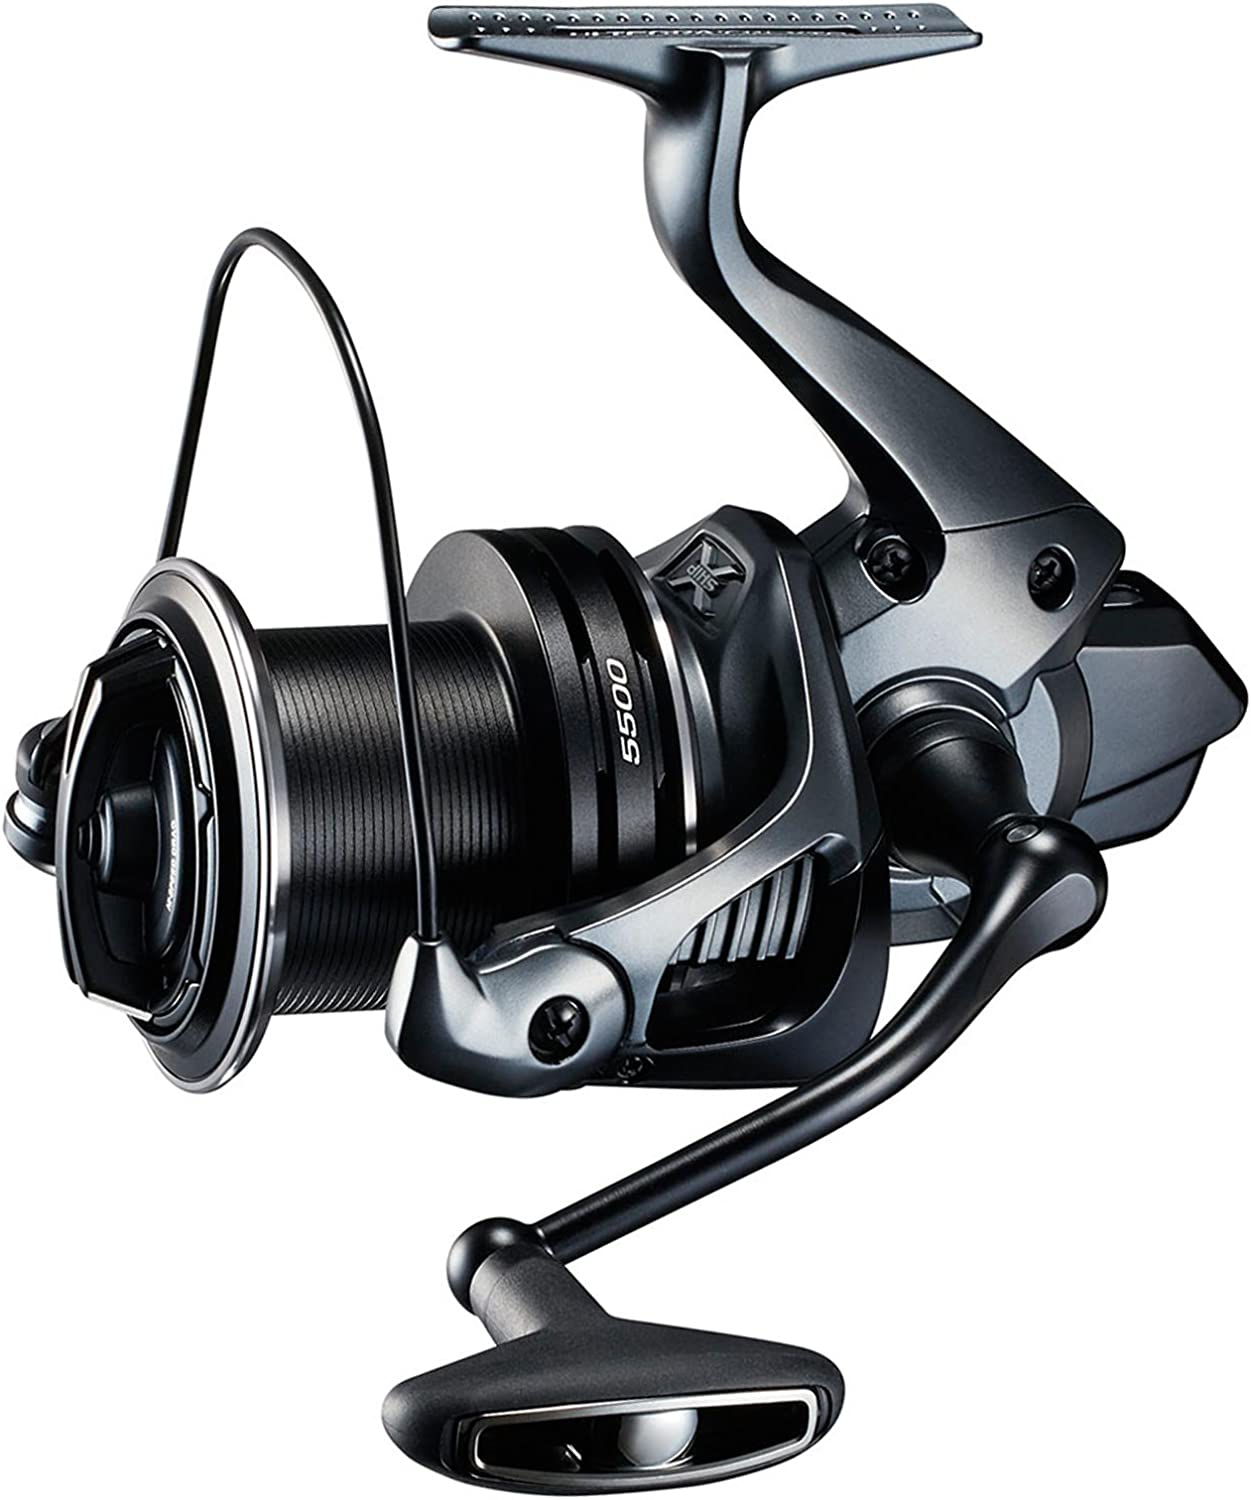 Shimano ULTEGRA CI4 XTC, Offshore Surf Saltwater Spinning Fishing Reel